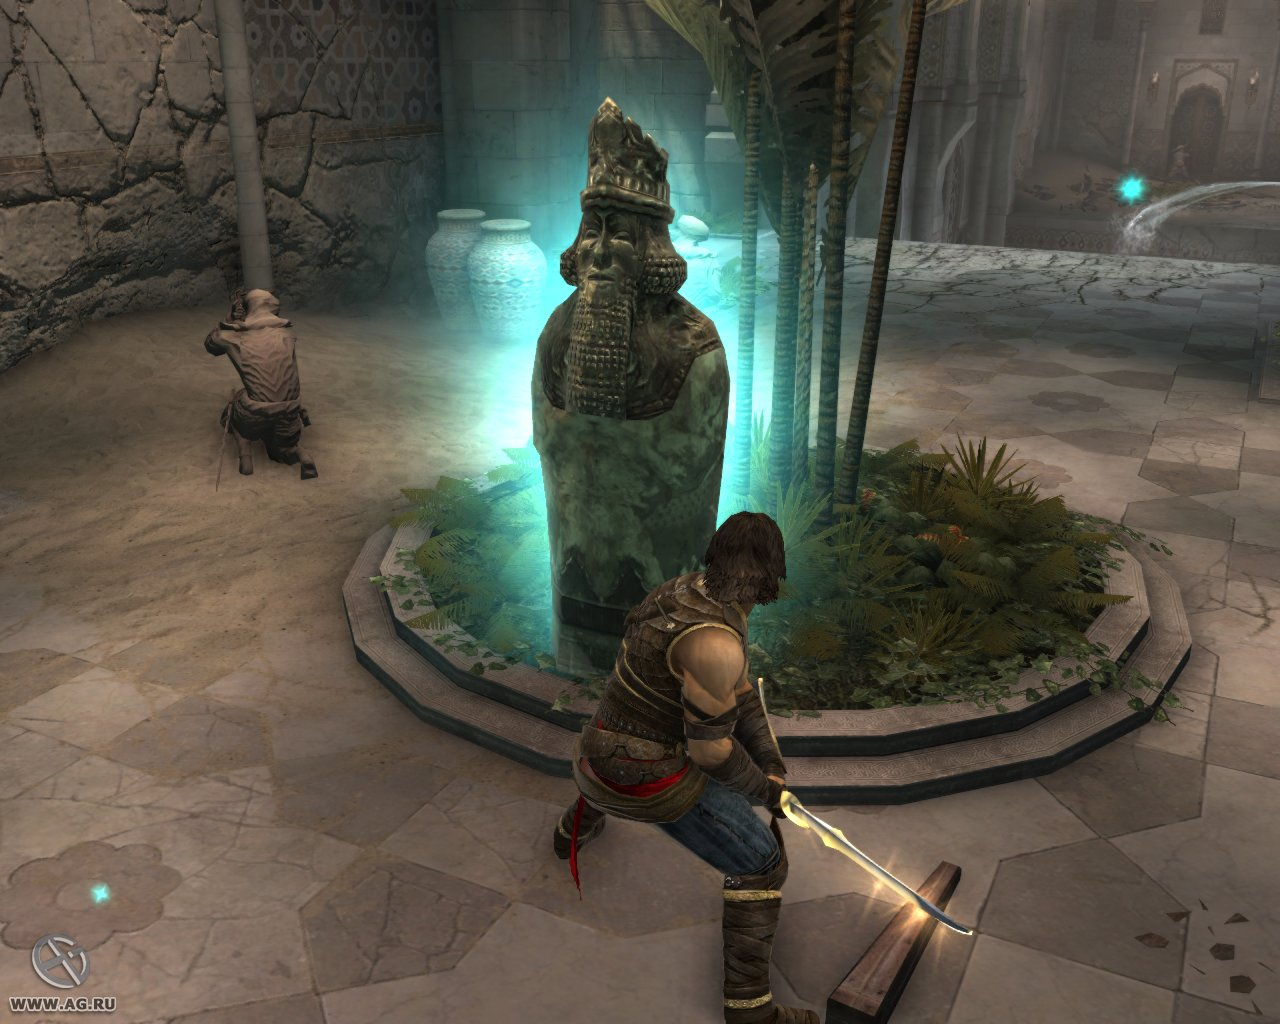 Prince of Persia - The Forgotten Sands (2010) PC   Repack by MOP030B